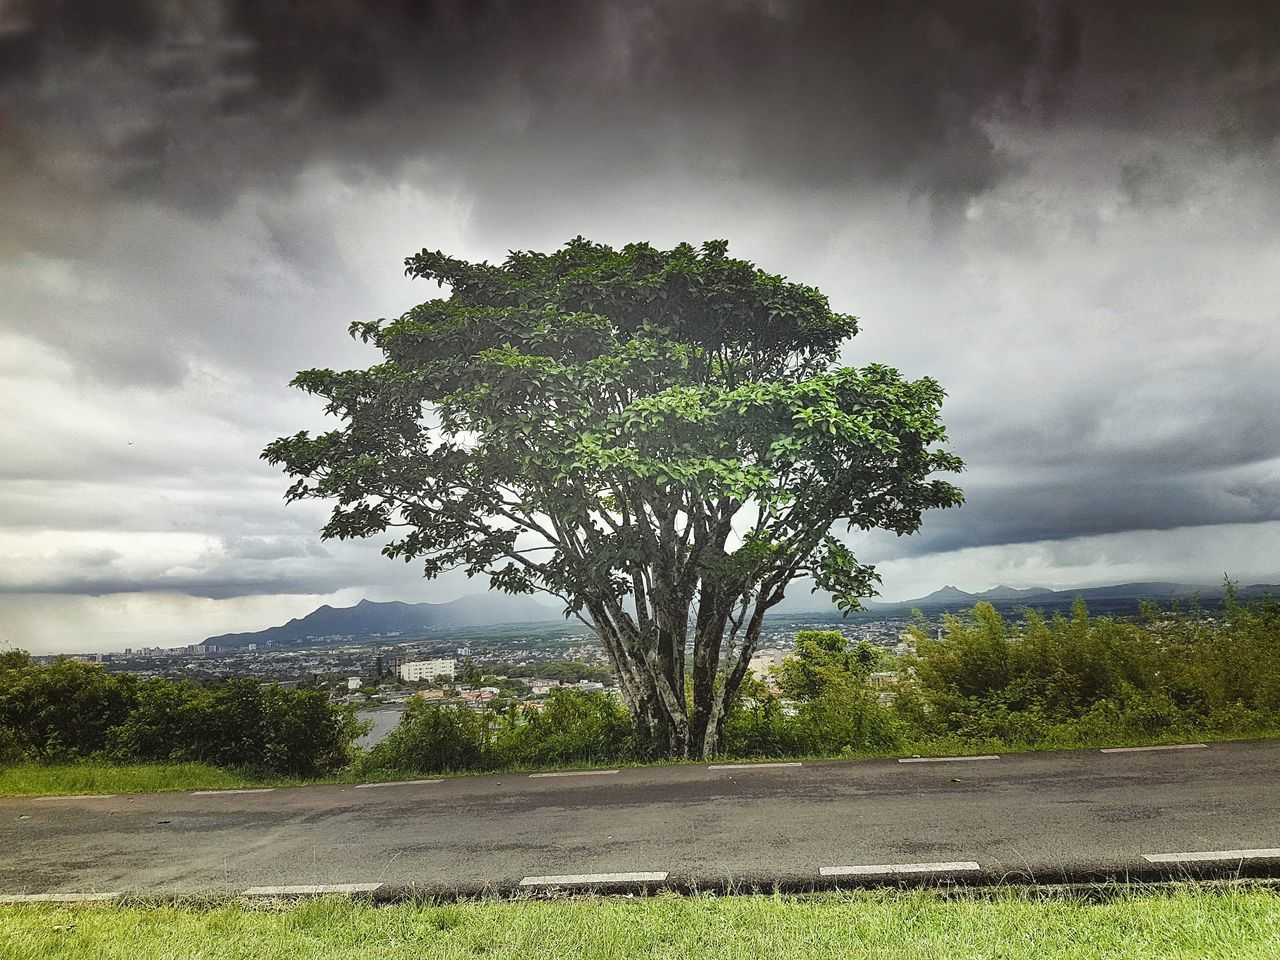 tree, cloud - sky, growth, landscape, nature, sky, tranquility, day, tranquil scene, no people, scenics, beauty in nature, outdoors, mountain, lone, grass